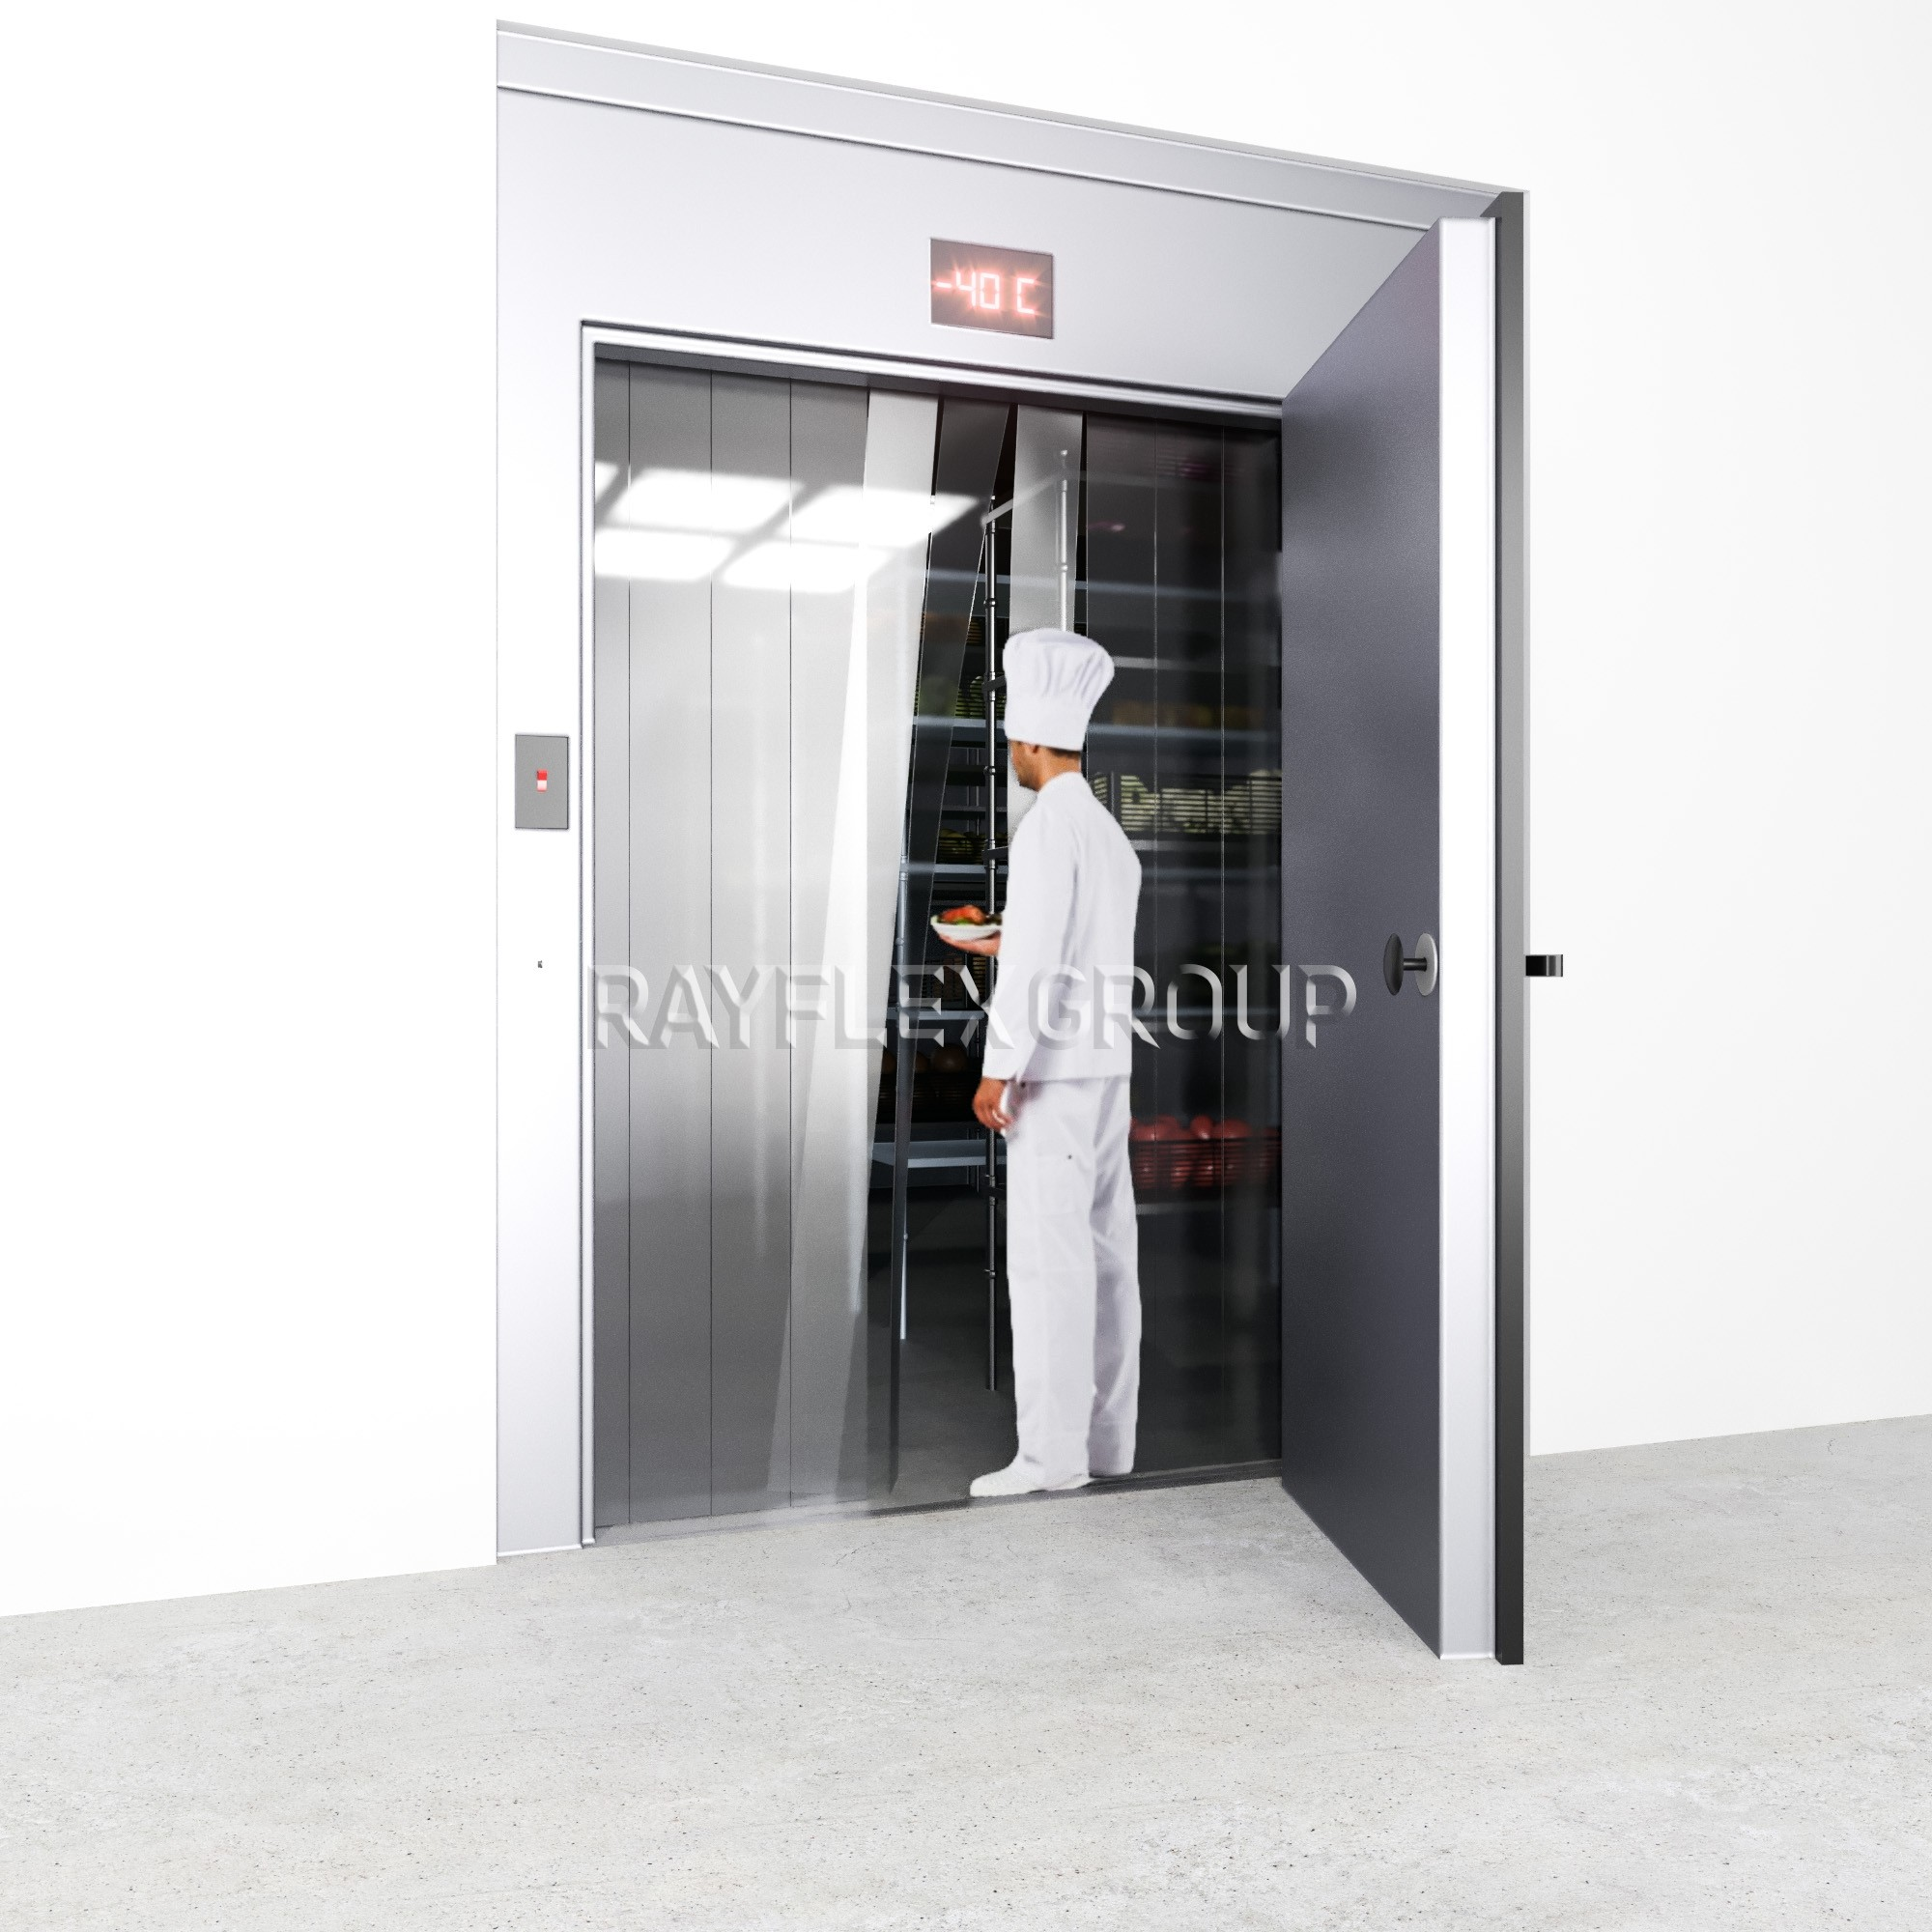 Strip Curtain Kits For Walk In Cooler Freezers Rayflex Group